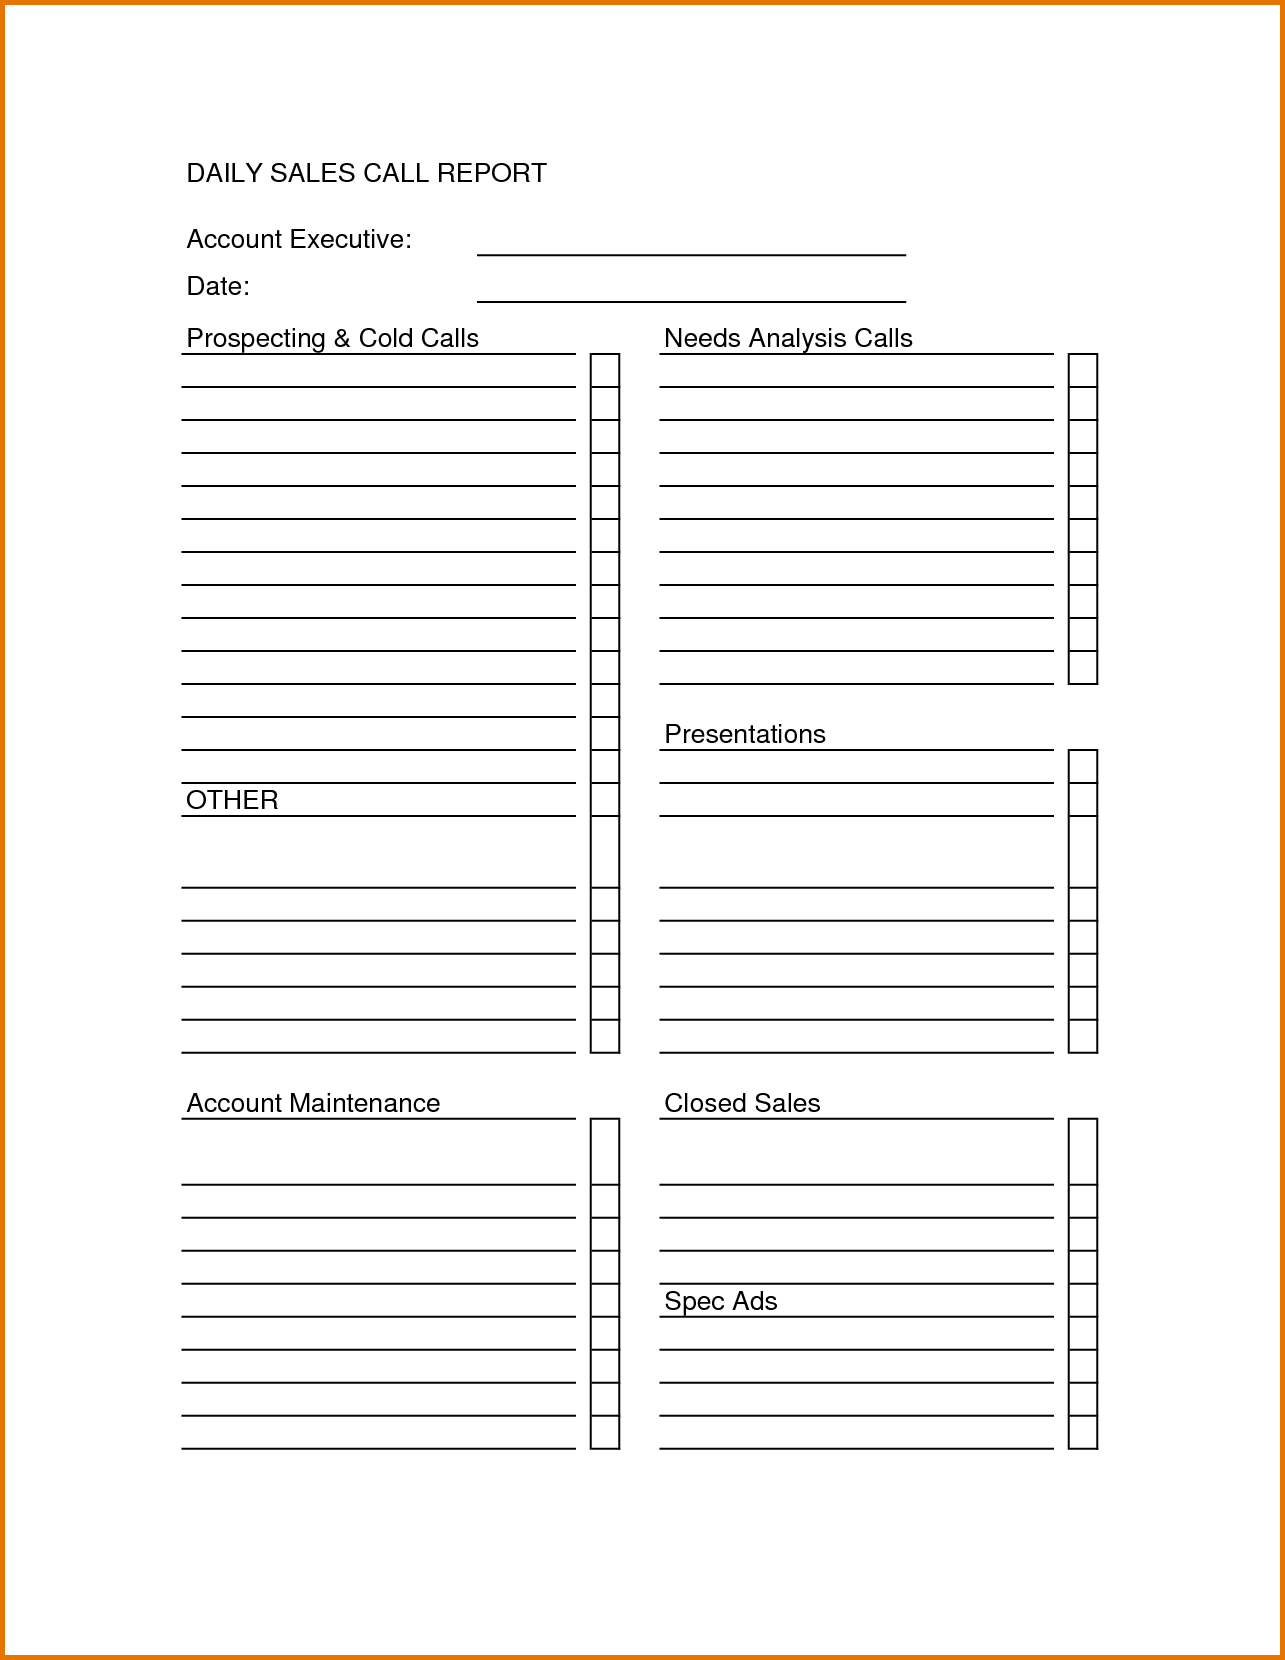 Sales Call Sheet Template Sales Call Report Sheet | Forms ...